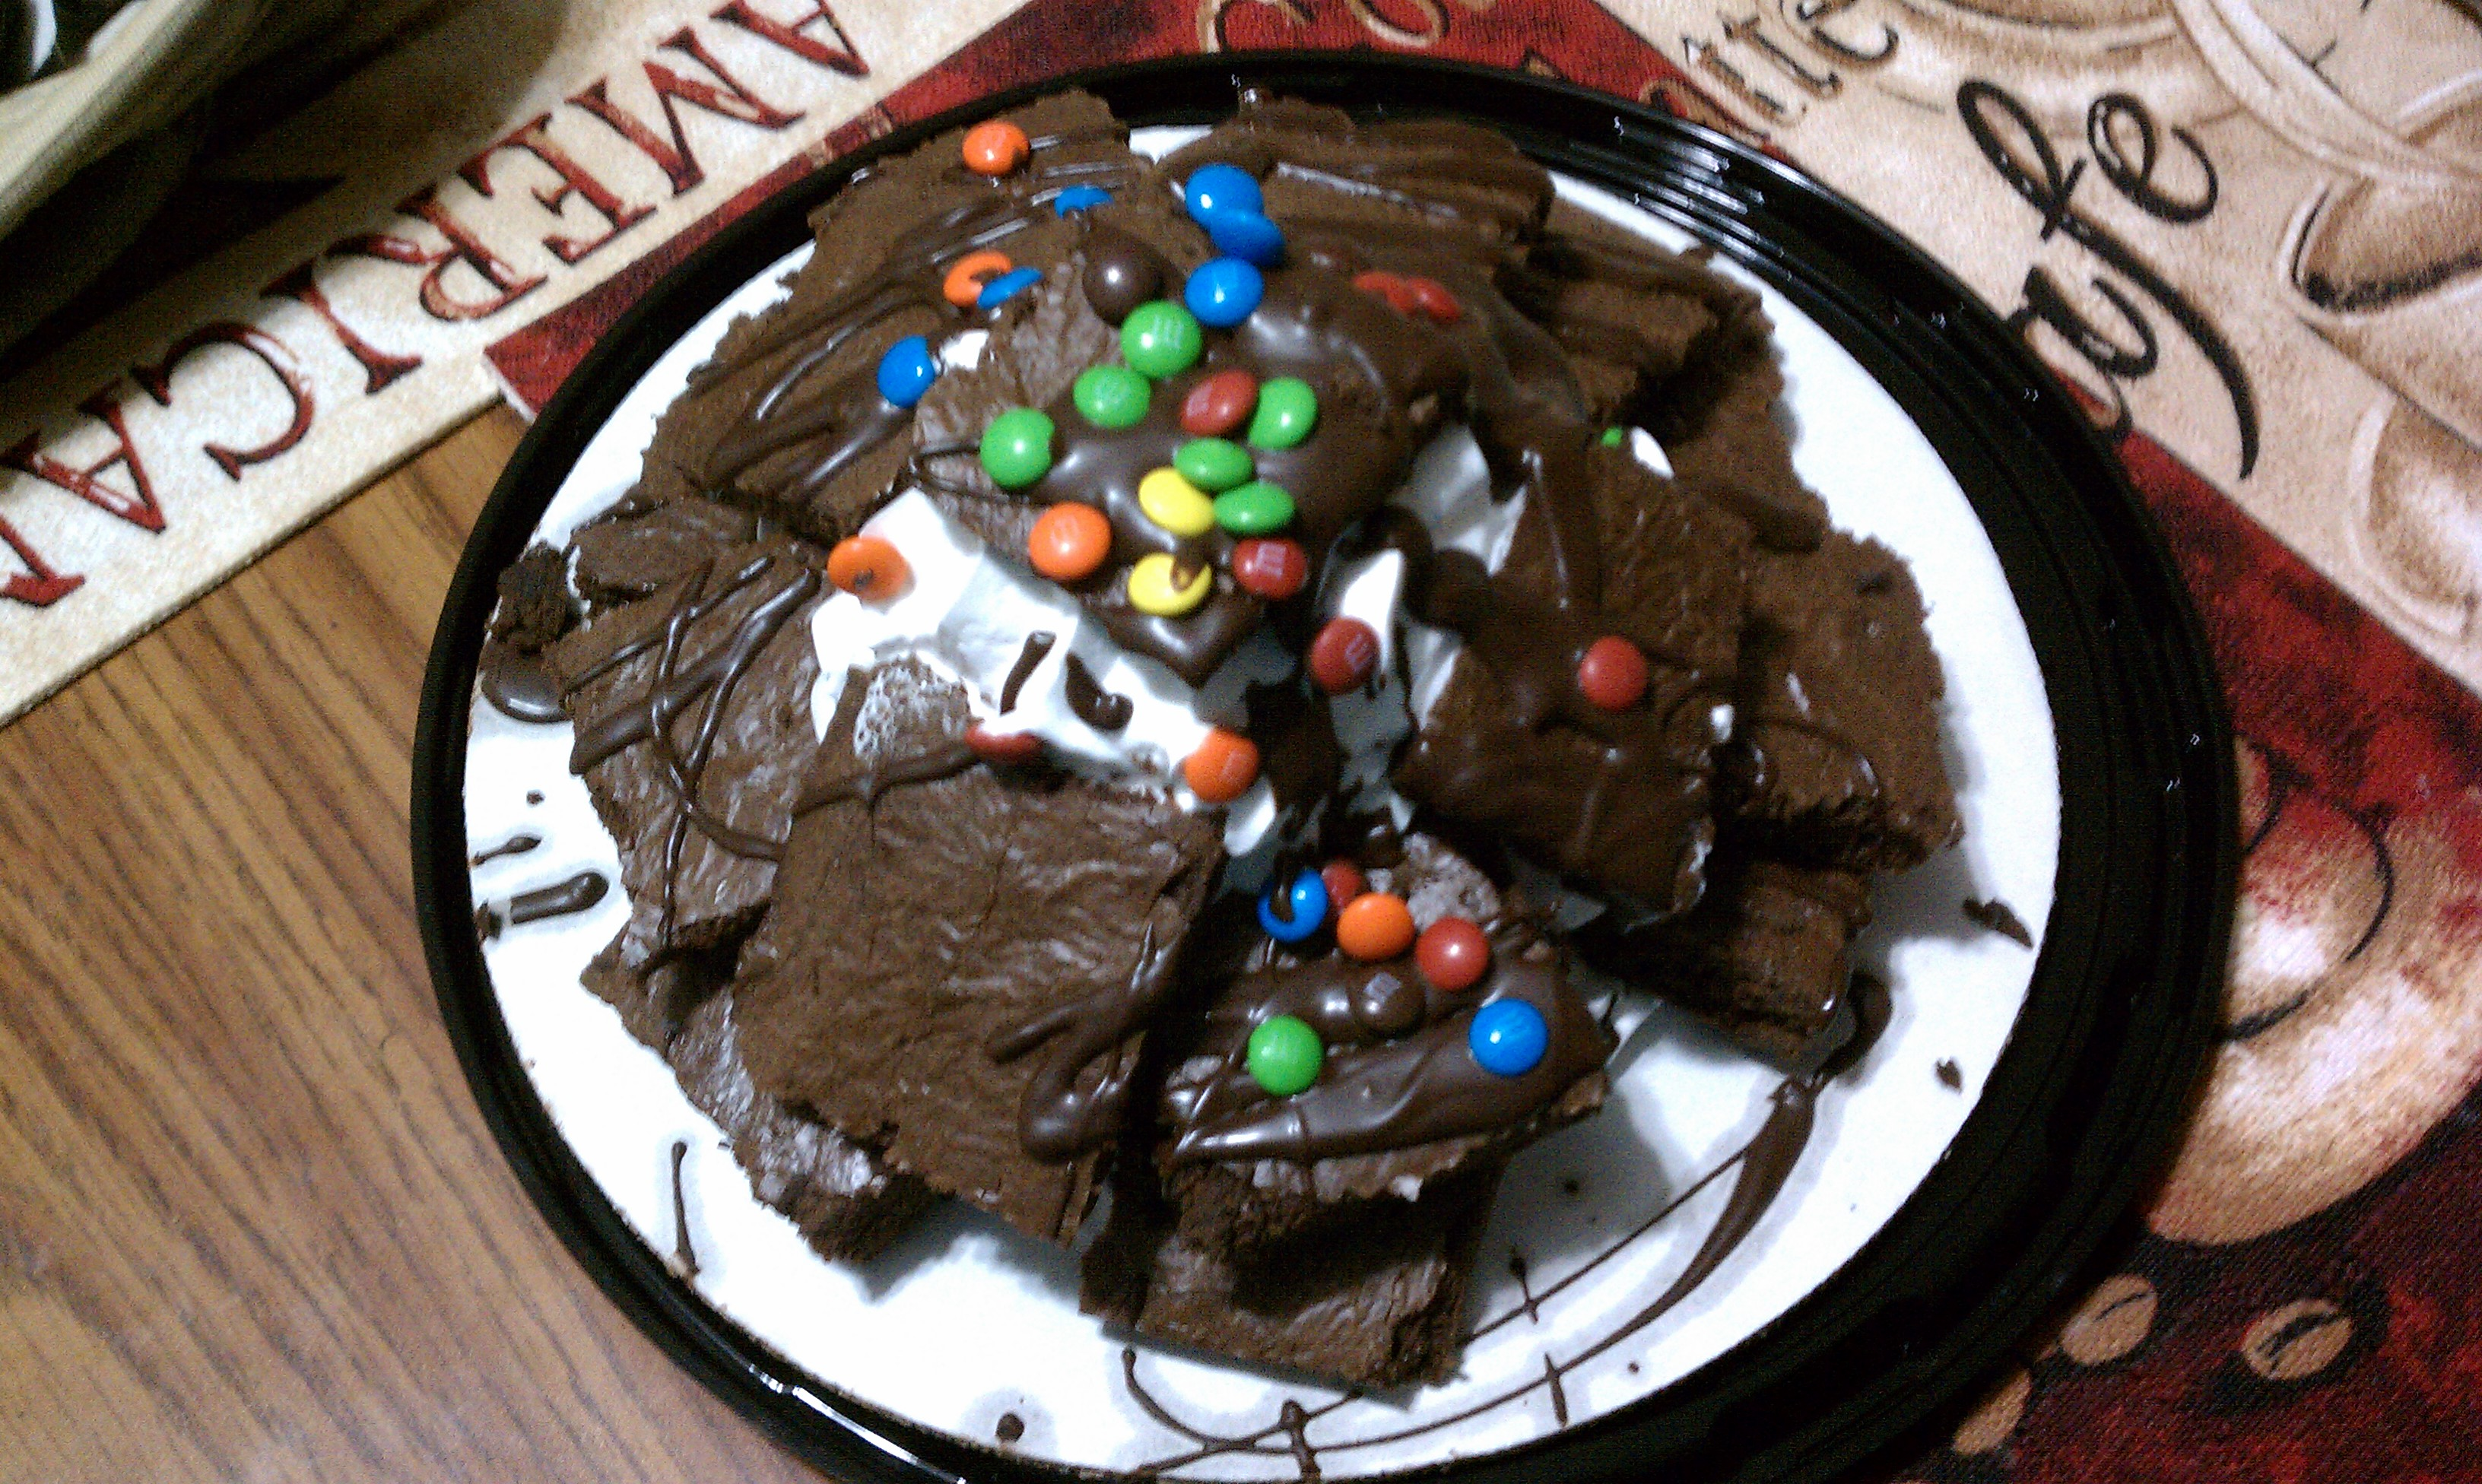 new Britain ct :: brownie dippers! Yum!